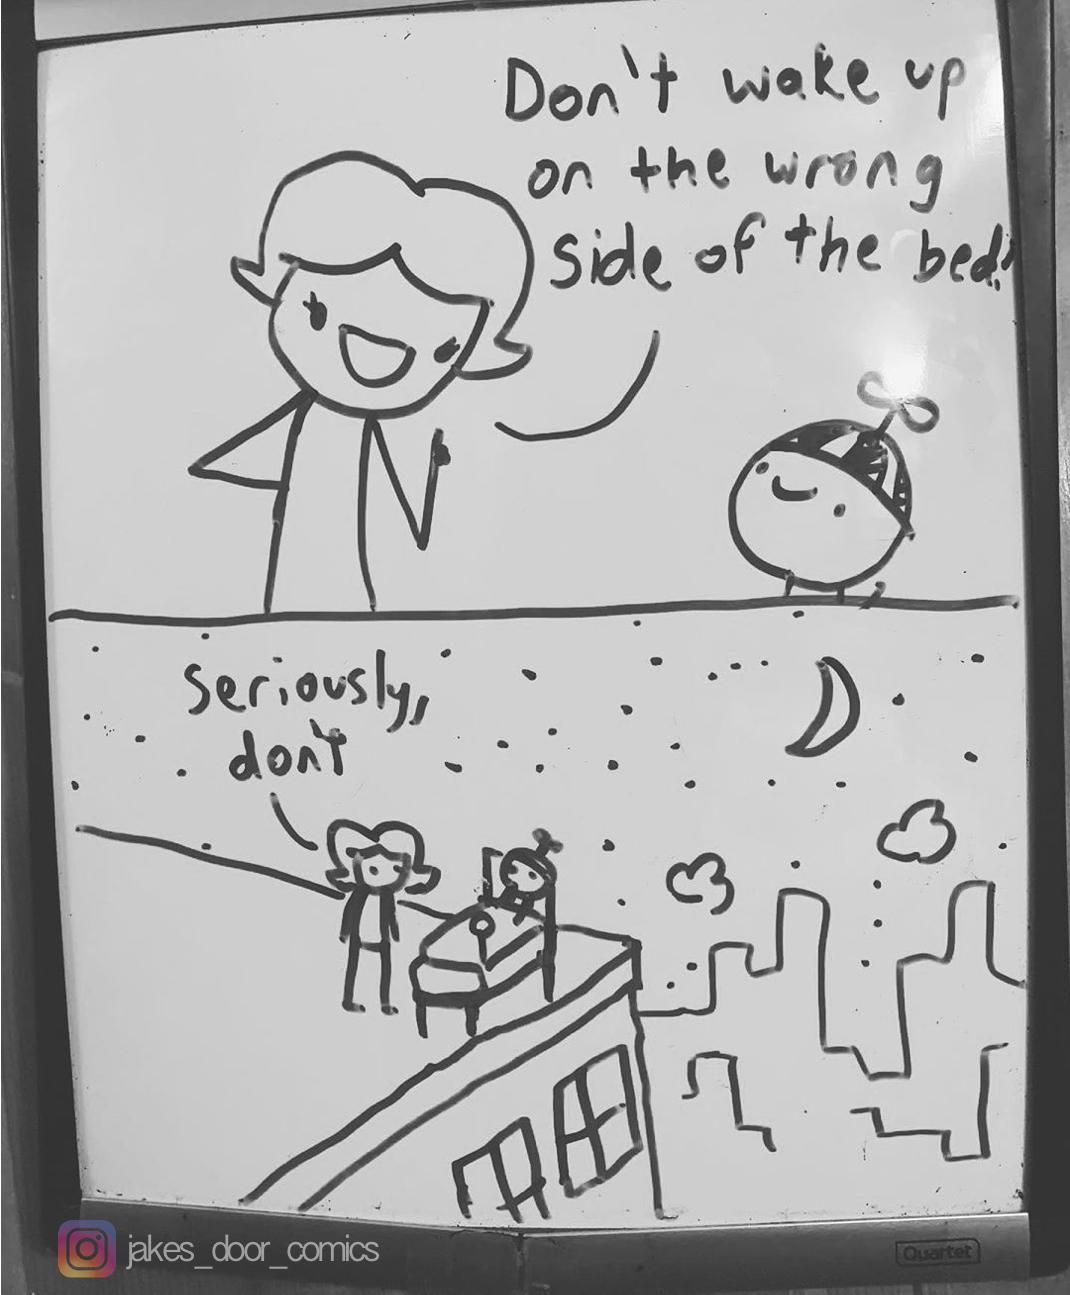 Last week I posted about my 14yo son drawing a new comic on his bedroom door whiteboard each night. Here's a recent one I thought was pretty funny.